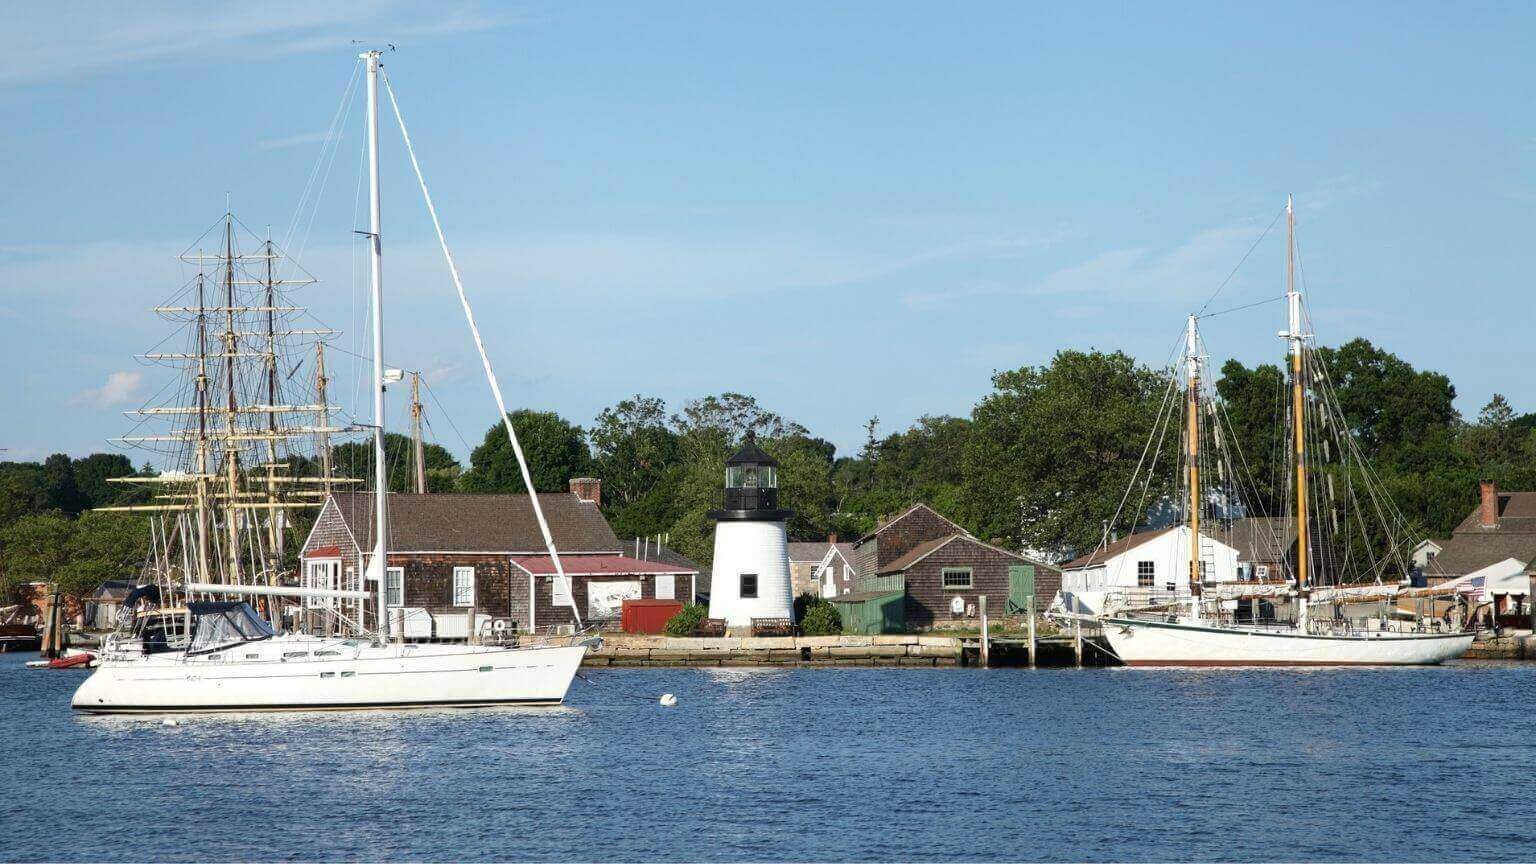 Mystic Seaport in New London County, Connecticut